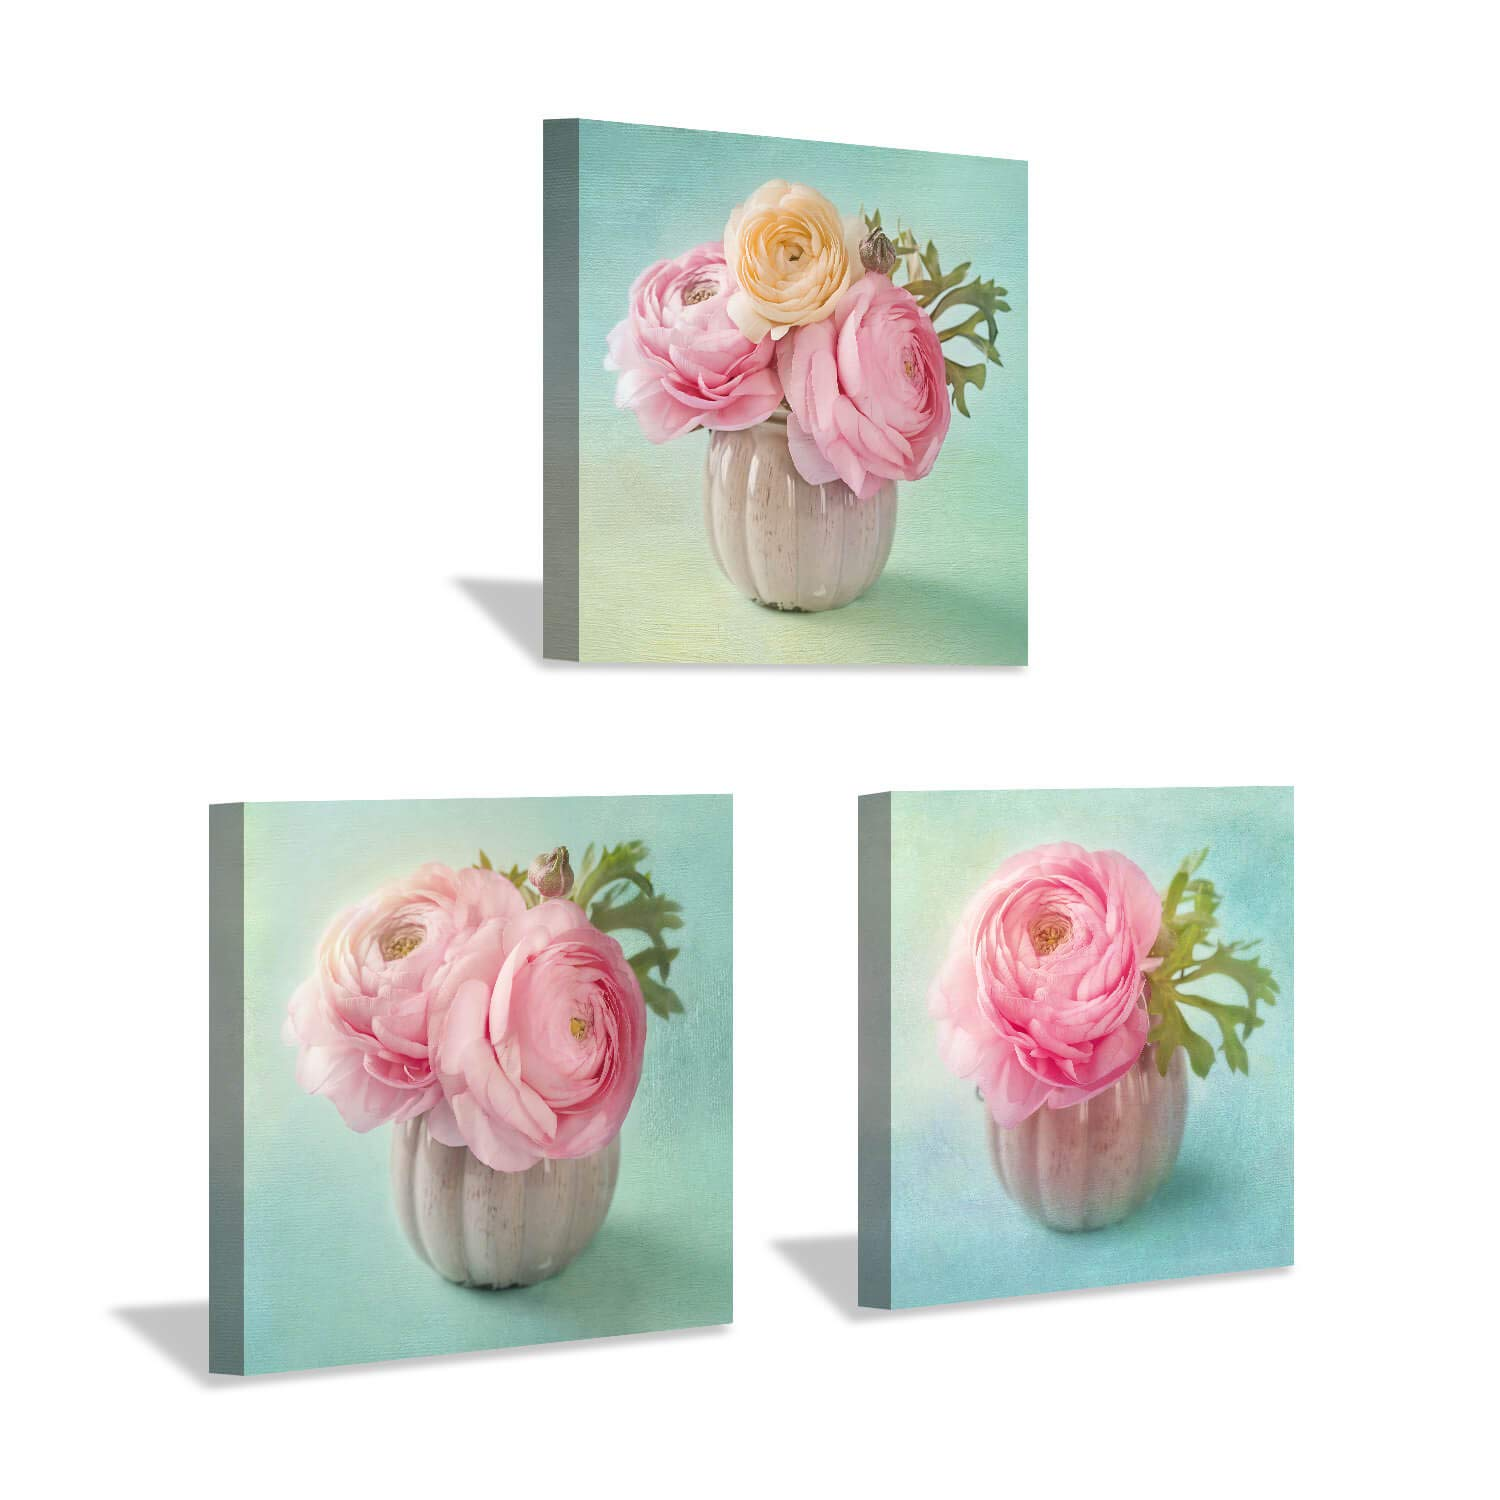 Hardy Gallery Floral Pictures Canvas Artwork Prints: Pink Rose Flower in Vase Pictures Wall Art on Wrapped Canvas for Bathroom (16'' x 16'' x 3 Panels)